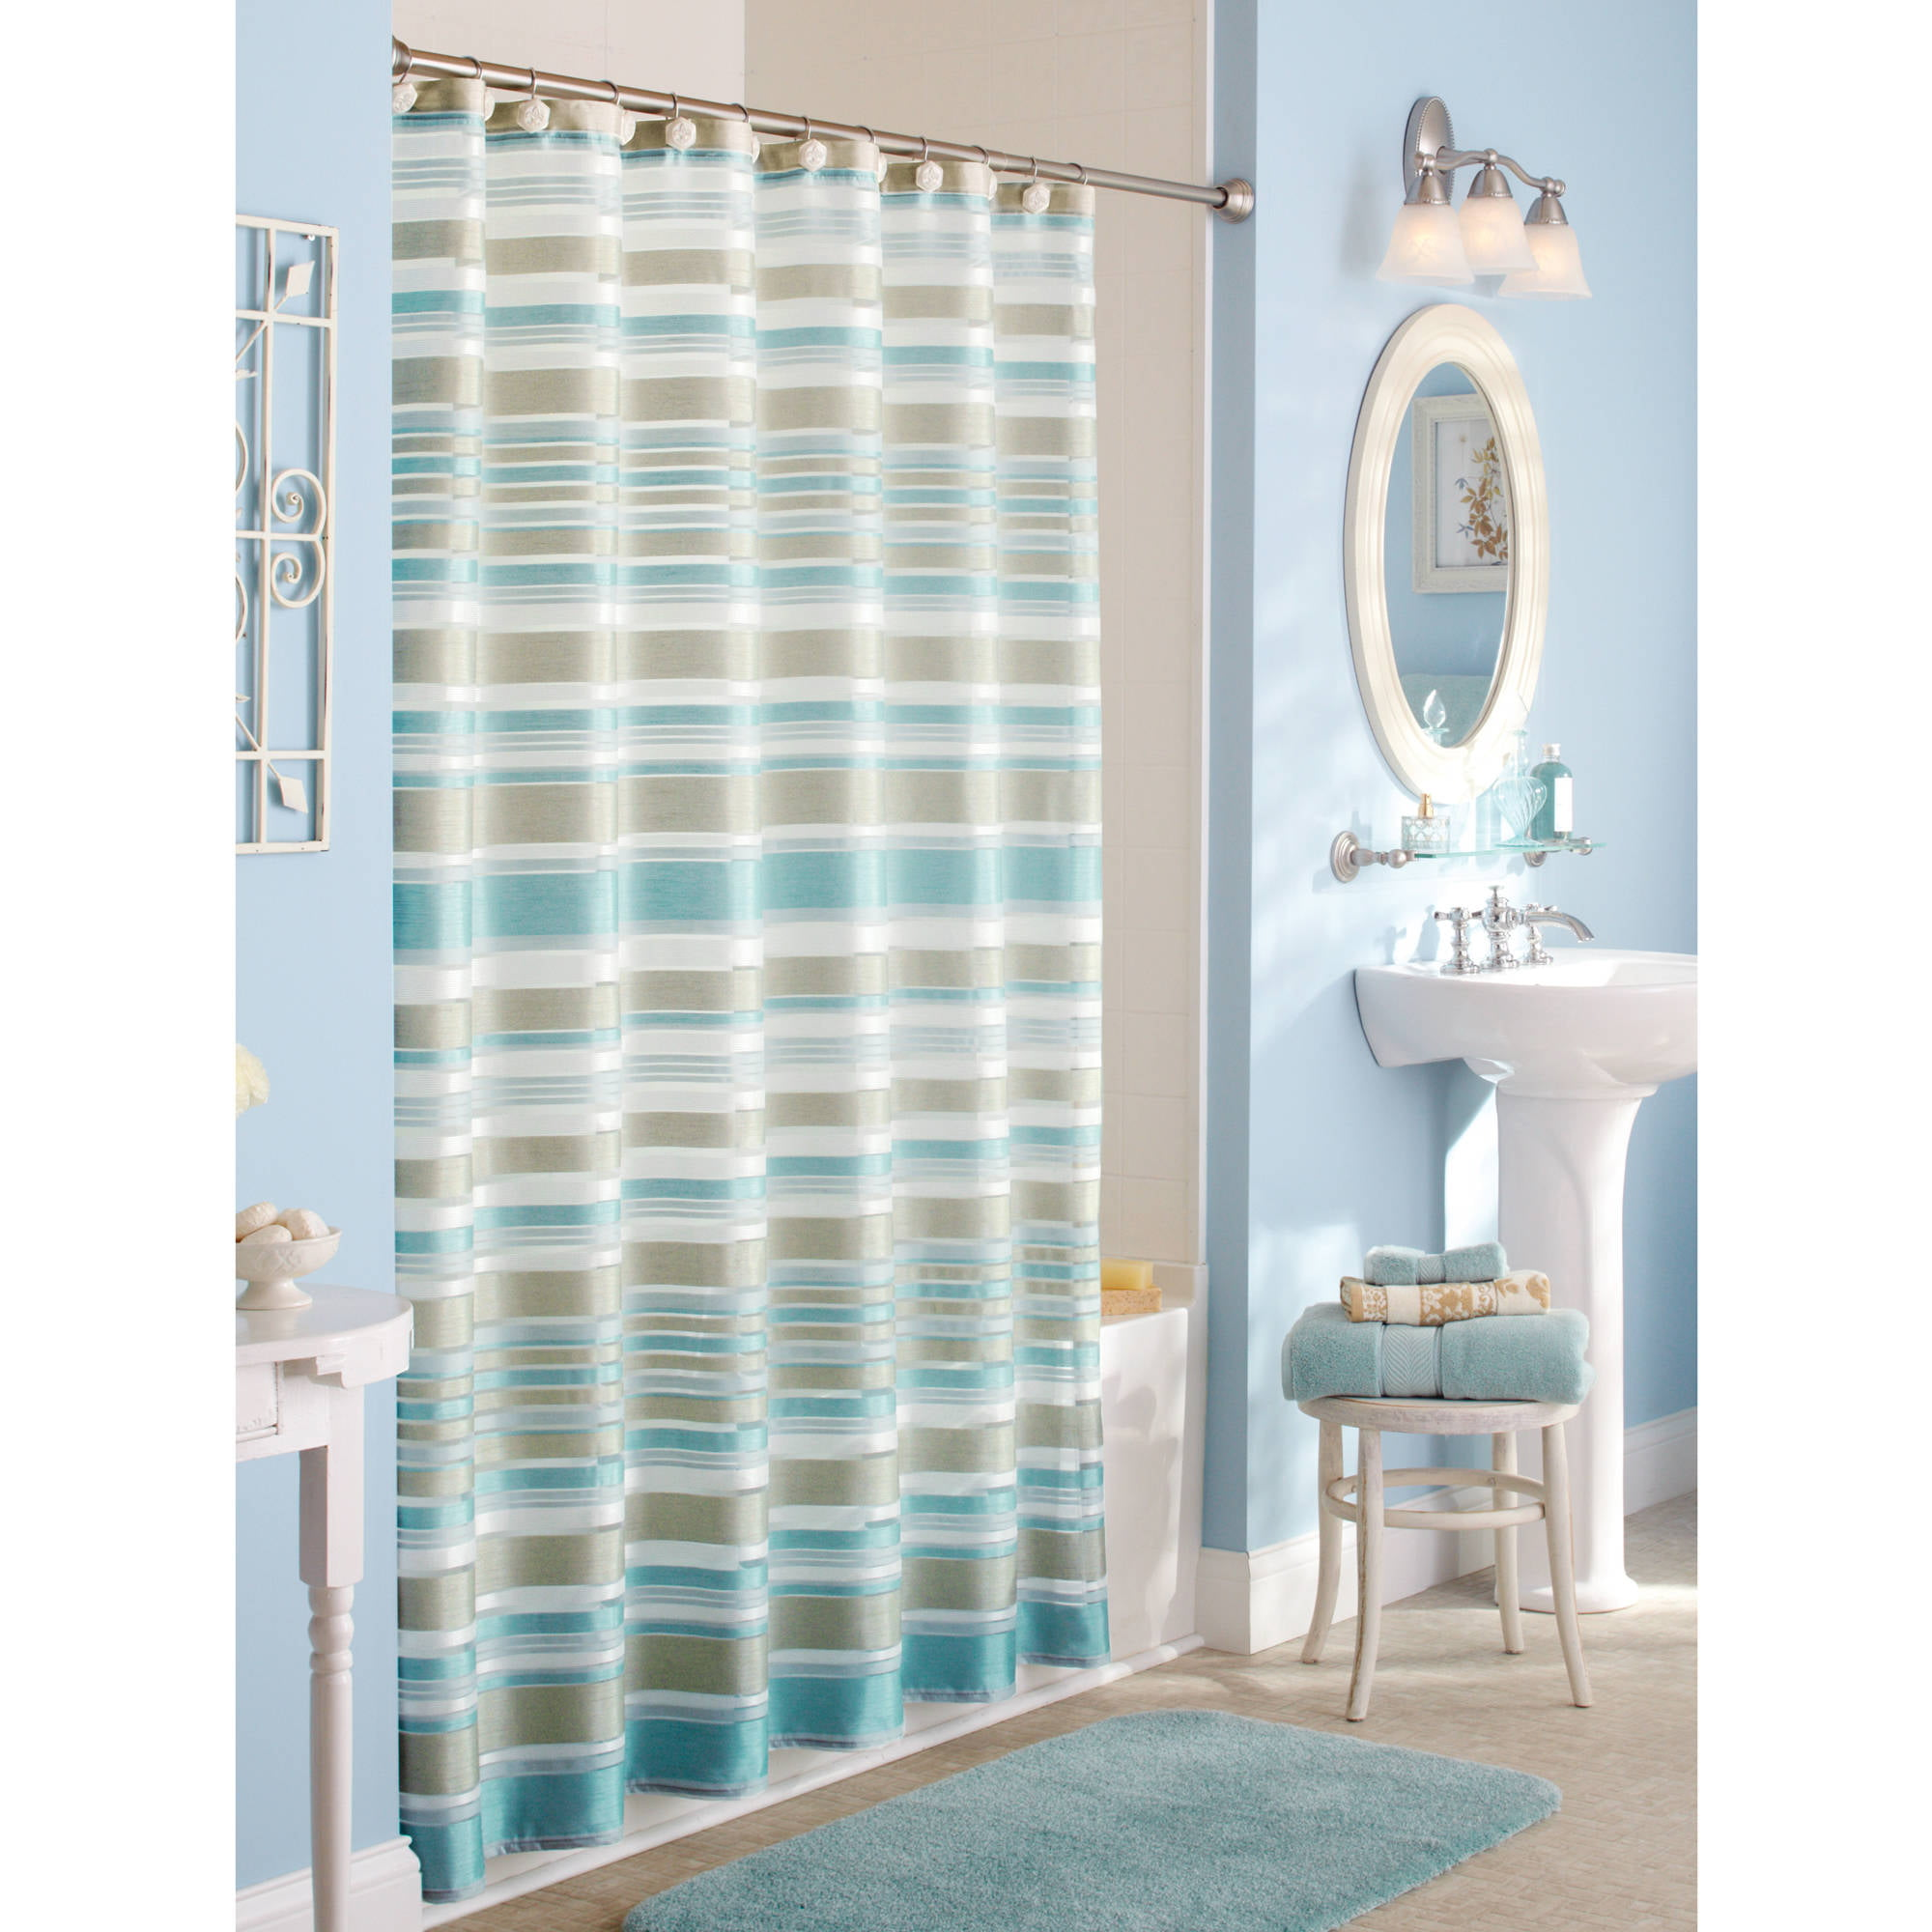 Mustache shower curtain - Better Homes And Gardens Classic Stripe Fabric Shower Curtain